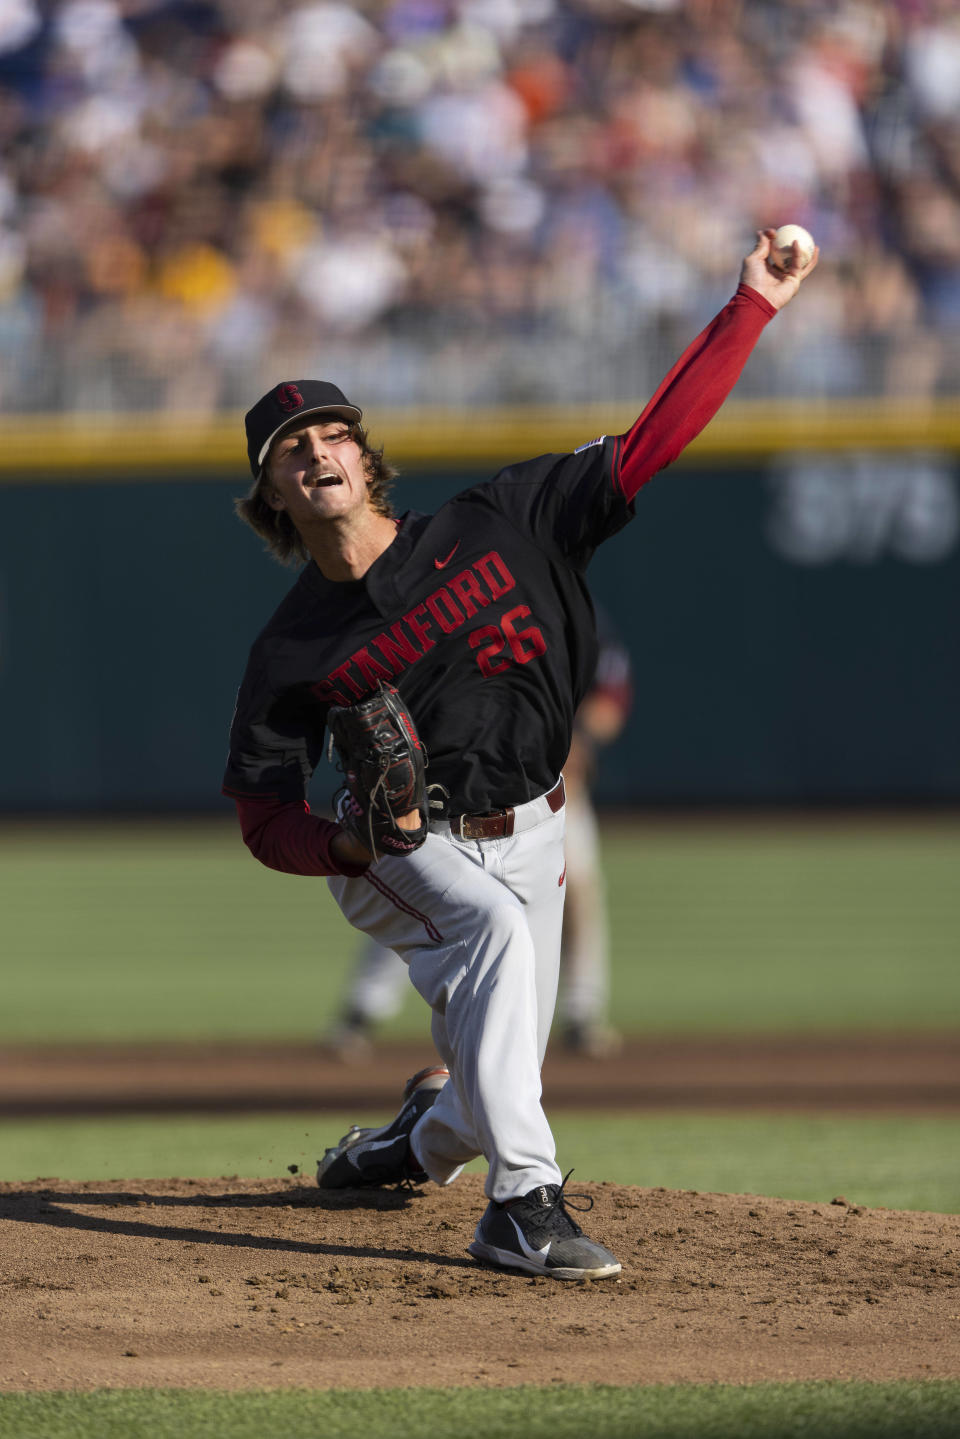 Stanford starting pitcher Quinn Mathews (26) throws against Vanderbilt in the first inning during a baseball game in the College World Series Wednesday, June 23, 2021, at TD Ameritrade Park in Omaha, Neb. (AP Photo/Rebecca S. Gratz)